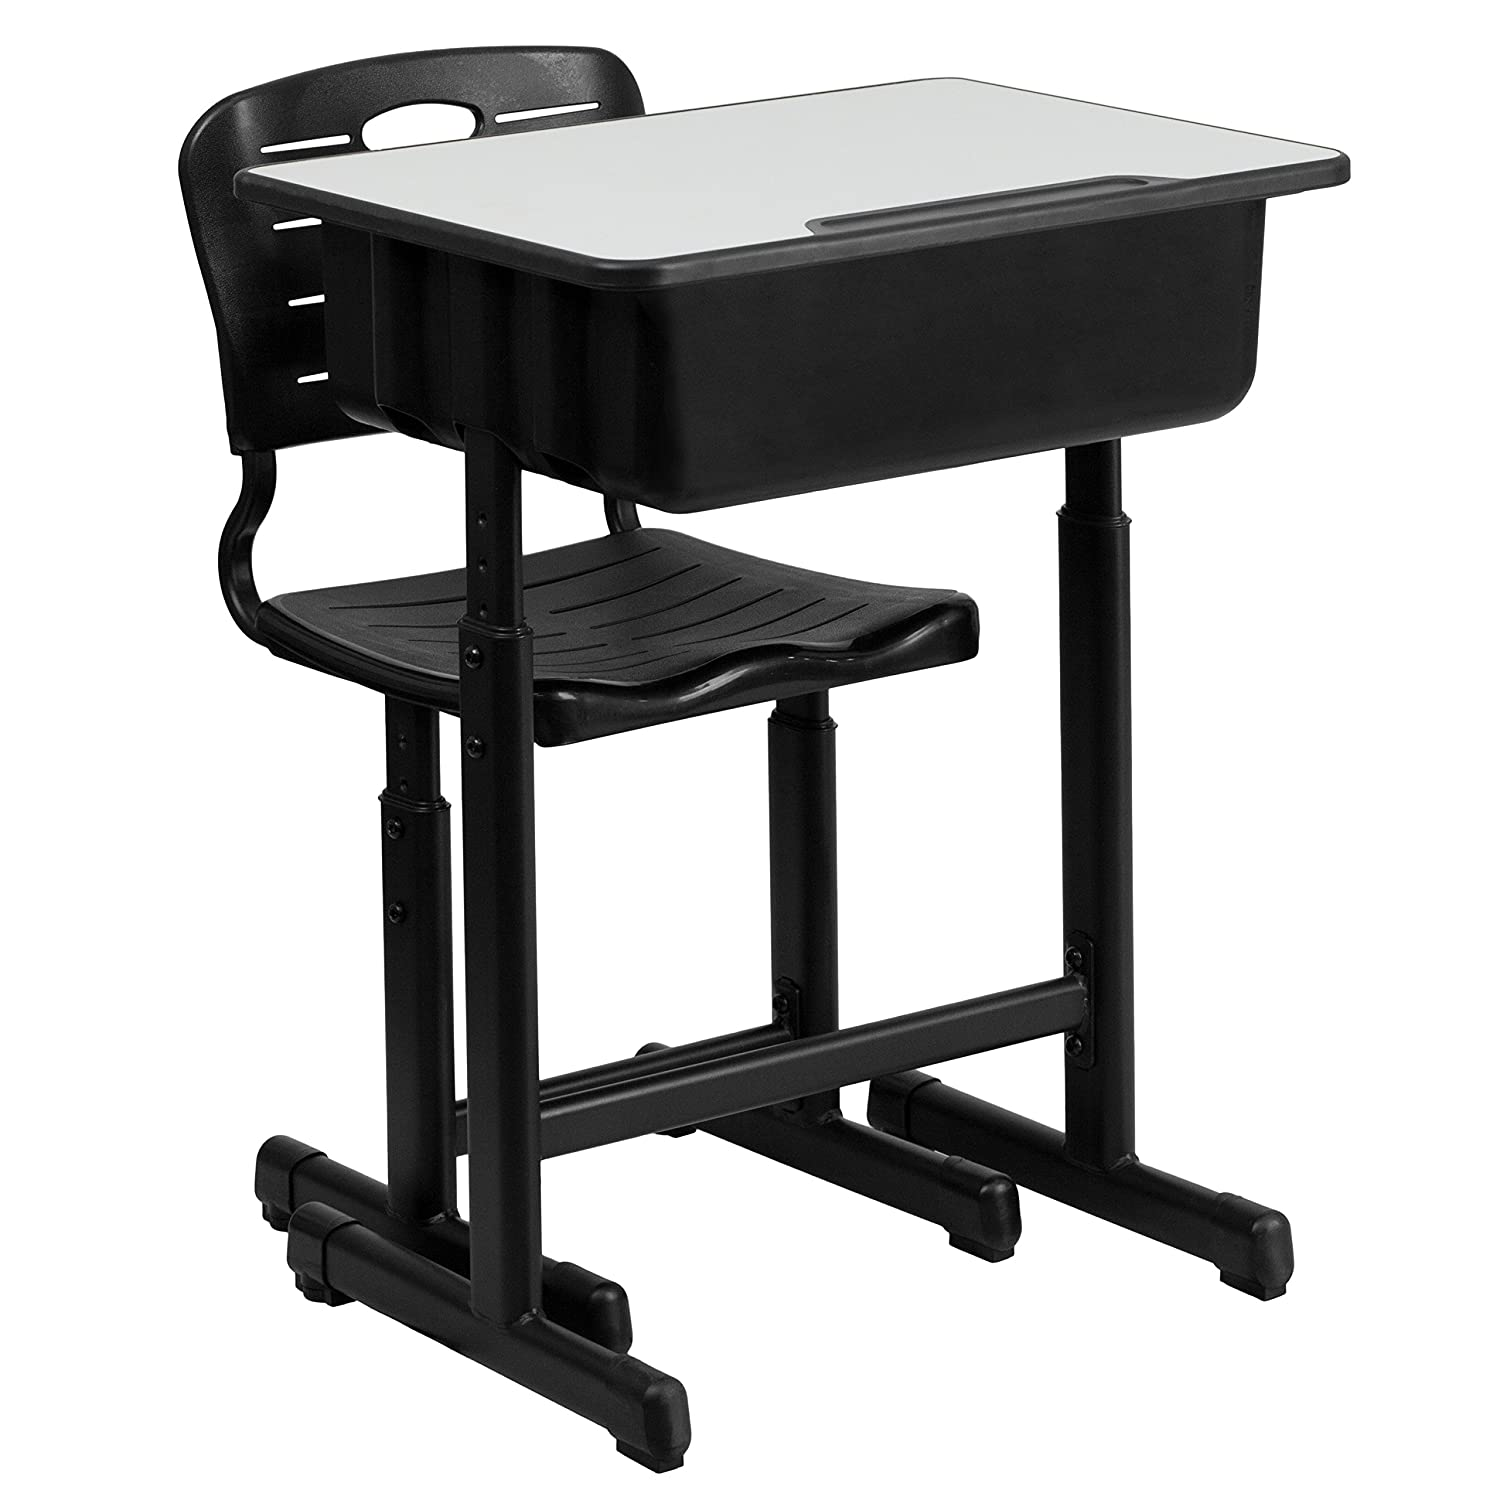 Flash Furniture Adjustable Height Student Desk and Chair with Black Pedestal Frame YU-YCX-046-09010-GG